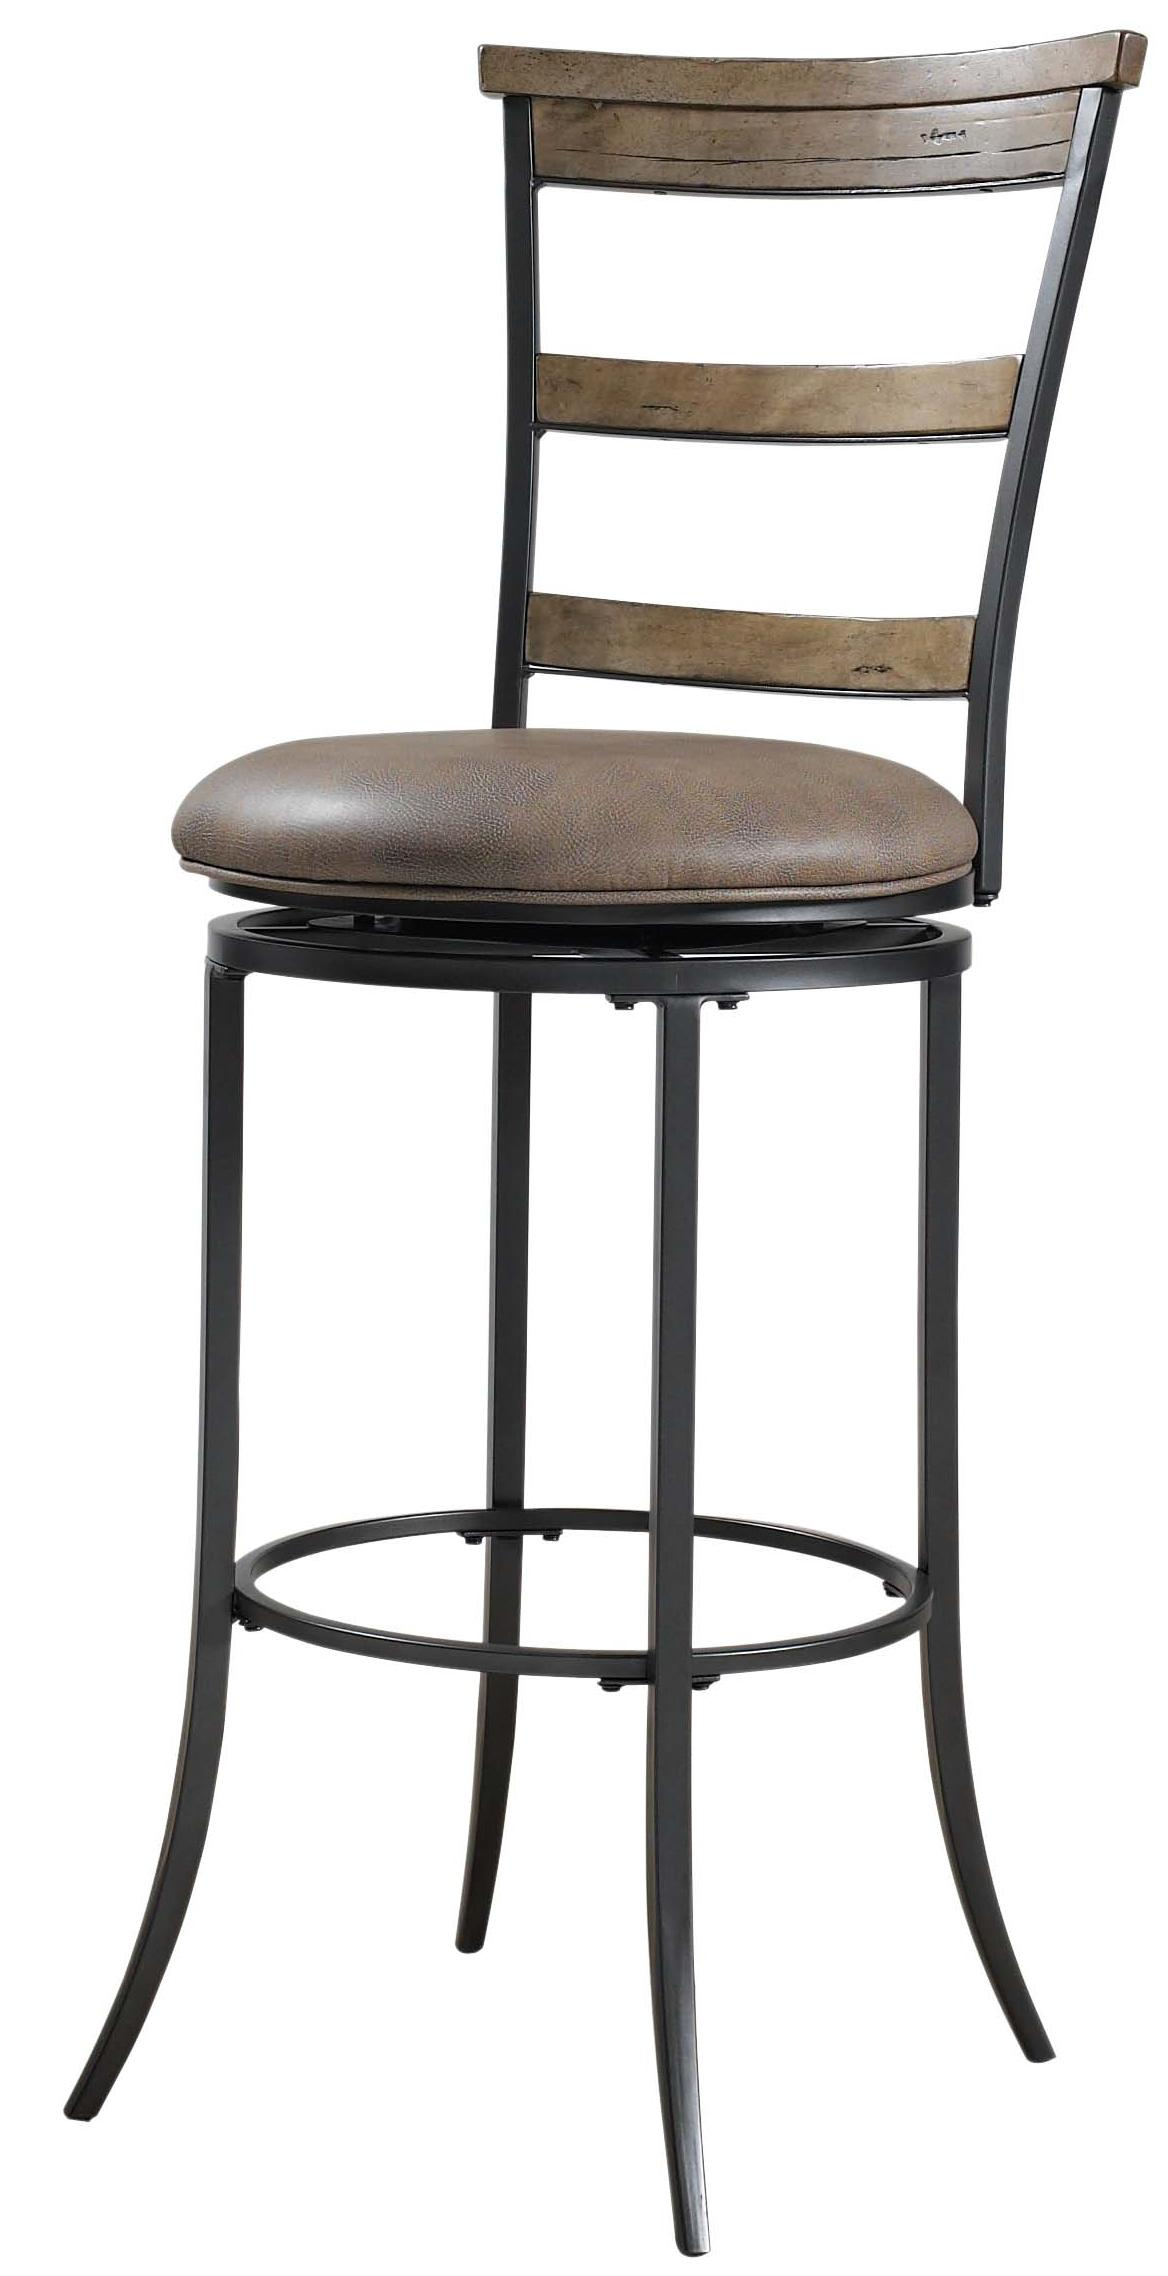 Bar Stool With Back And Arms   Swivel Bar Stools With Back And Arms Cabinet  Hardware Room, Bar Stools Counter Stools Ikea Swivel Bar Stools With Arms  Bar, ...